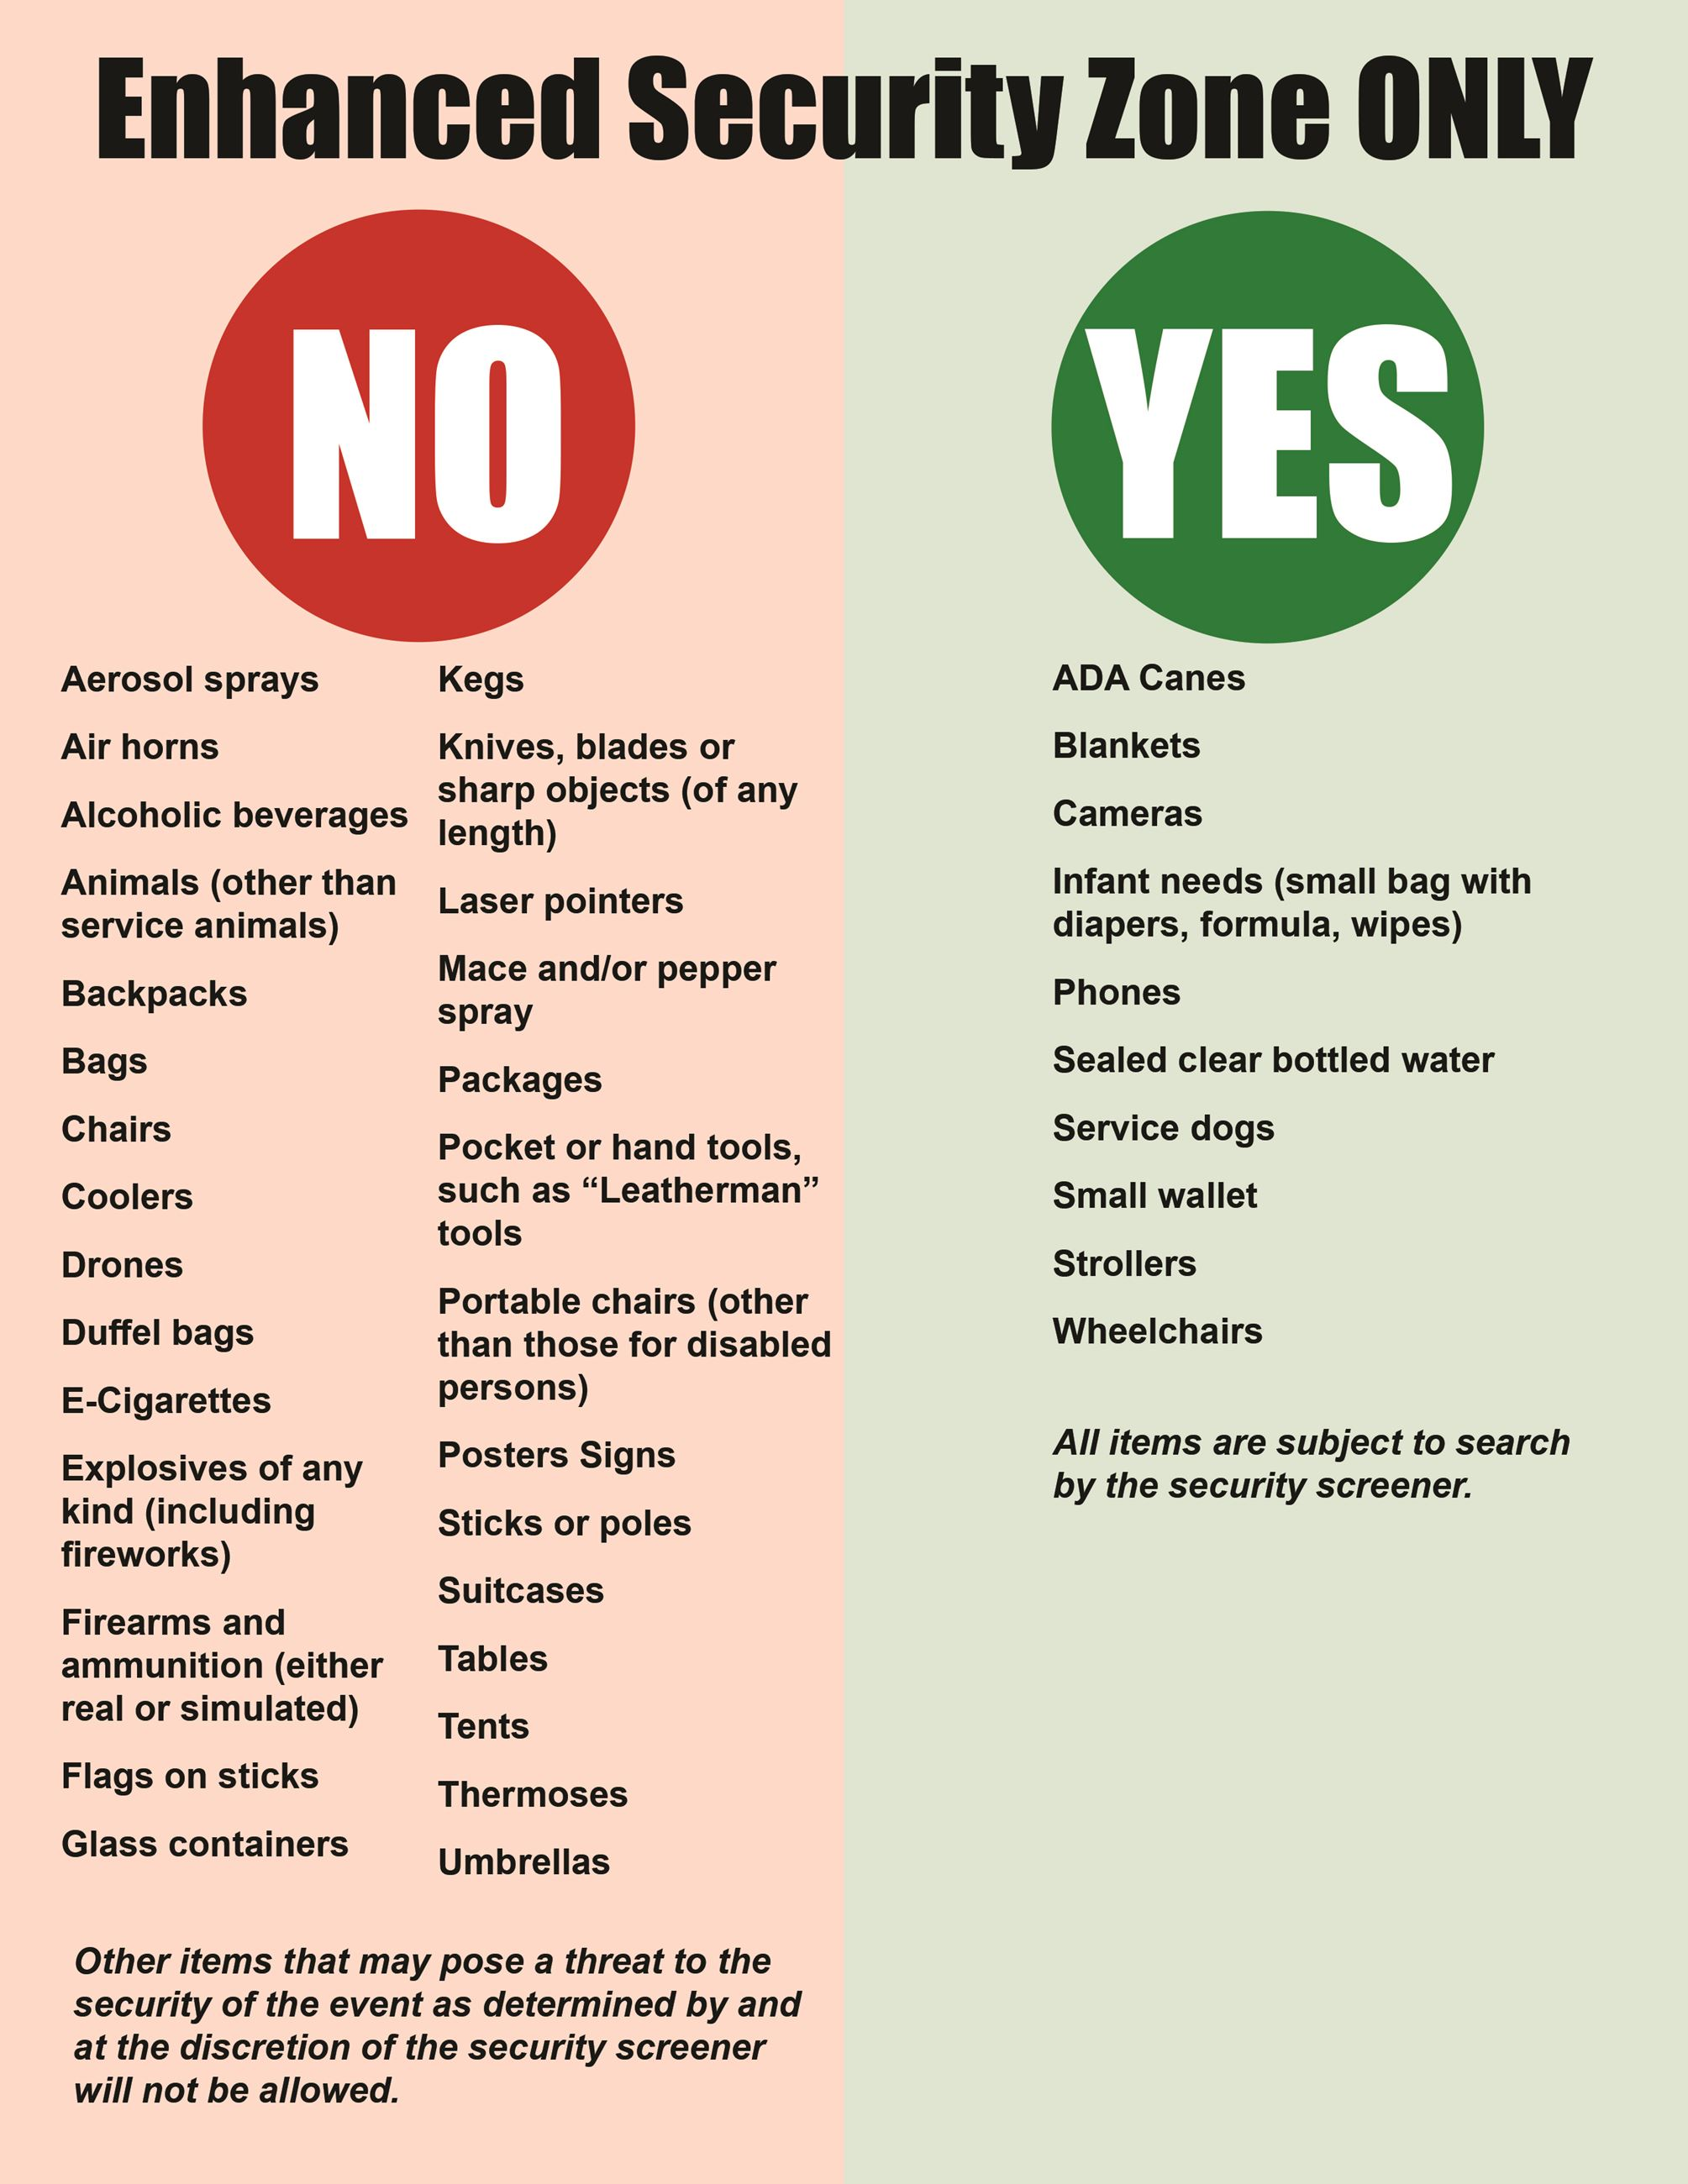 List of Yes and No